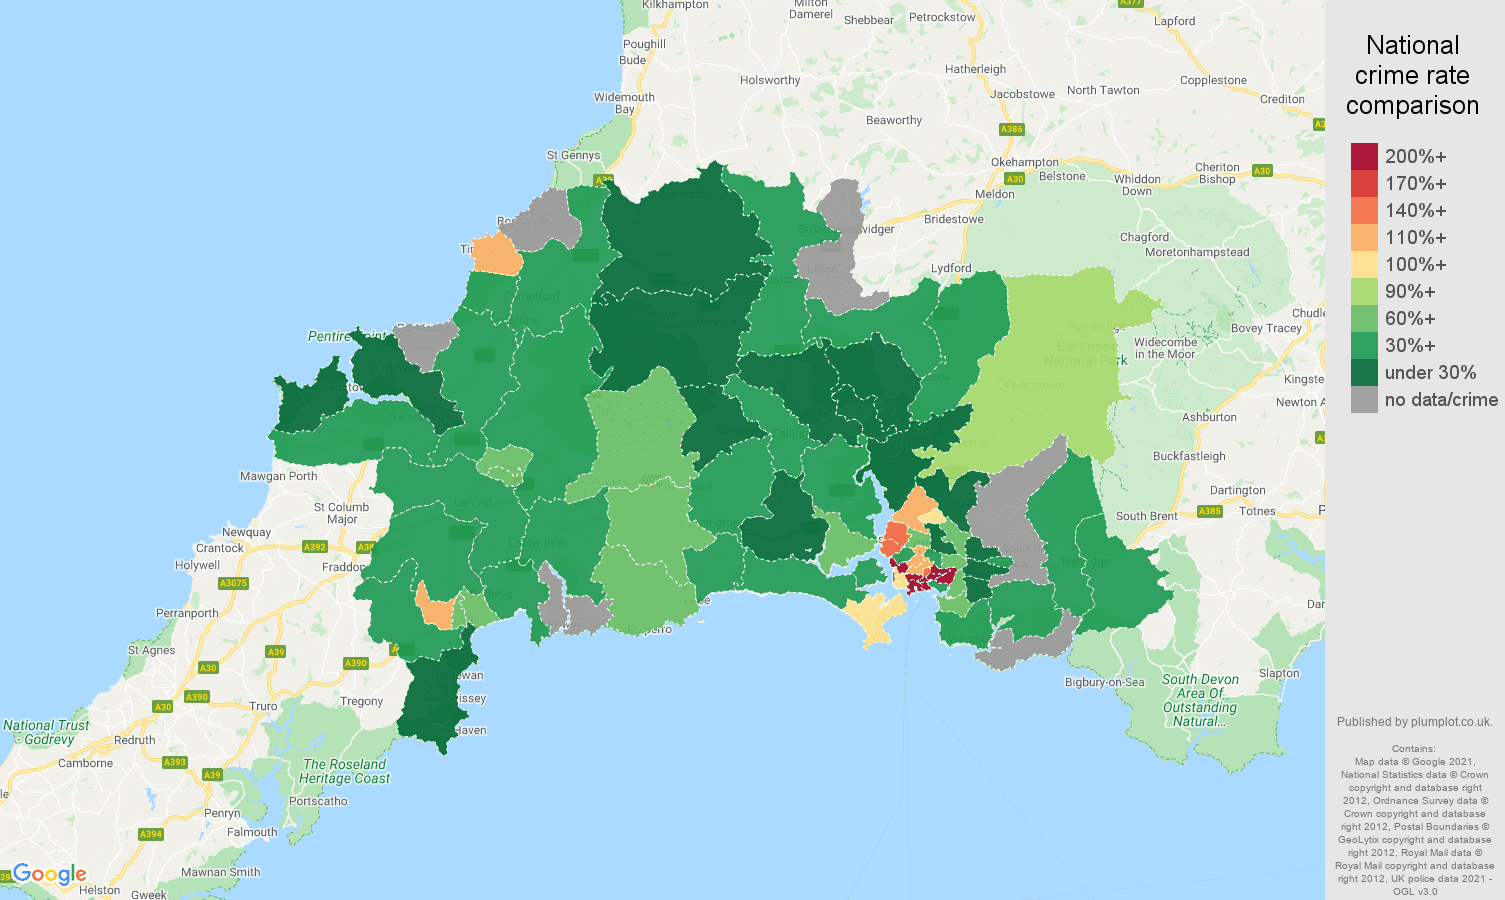 Plymouth drugs crime rate comparison map